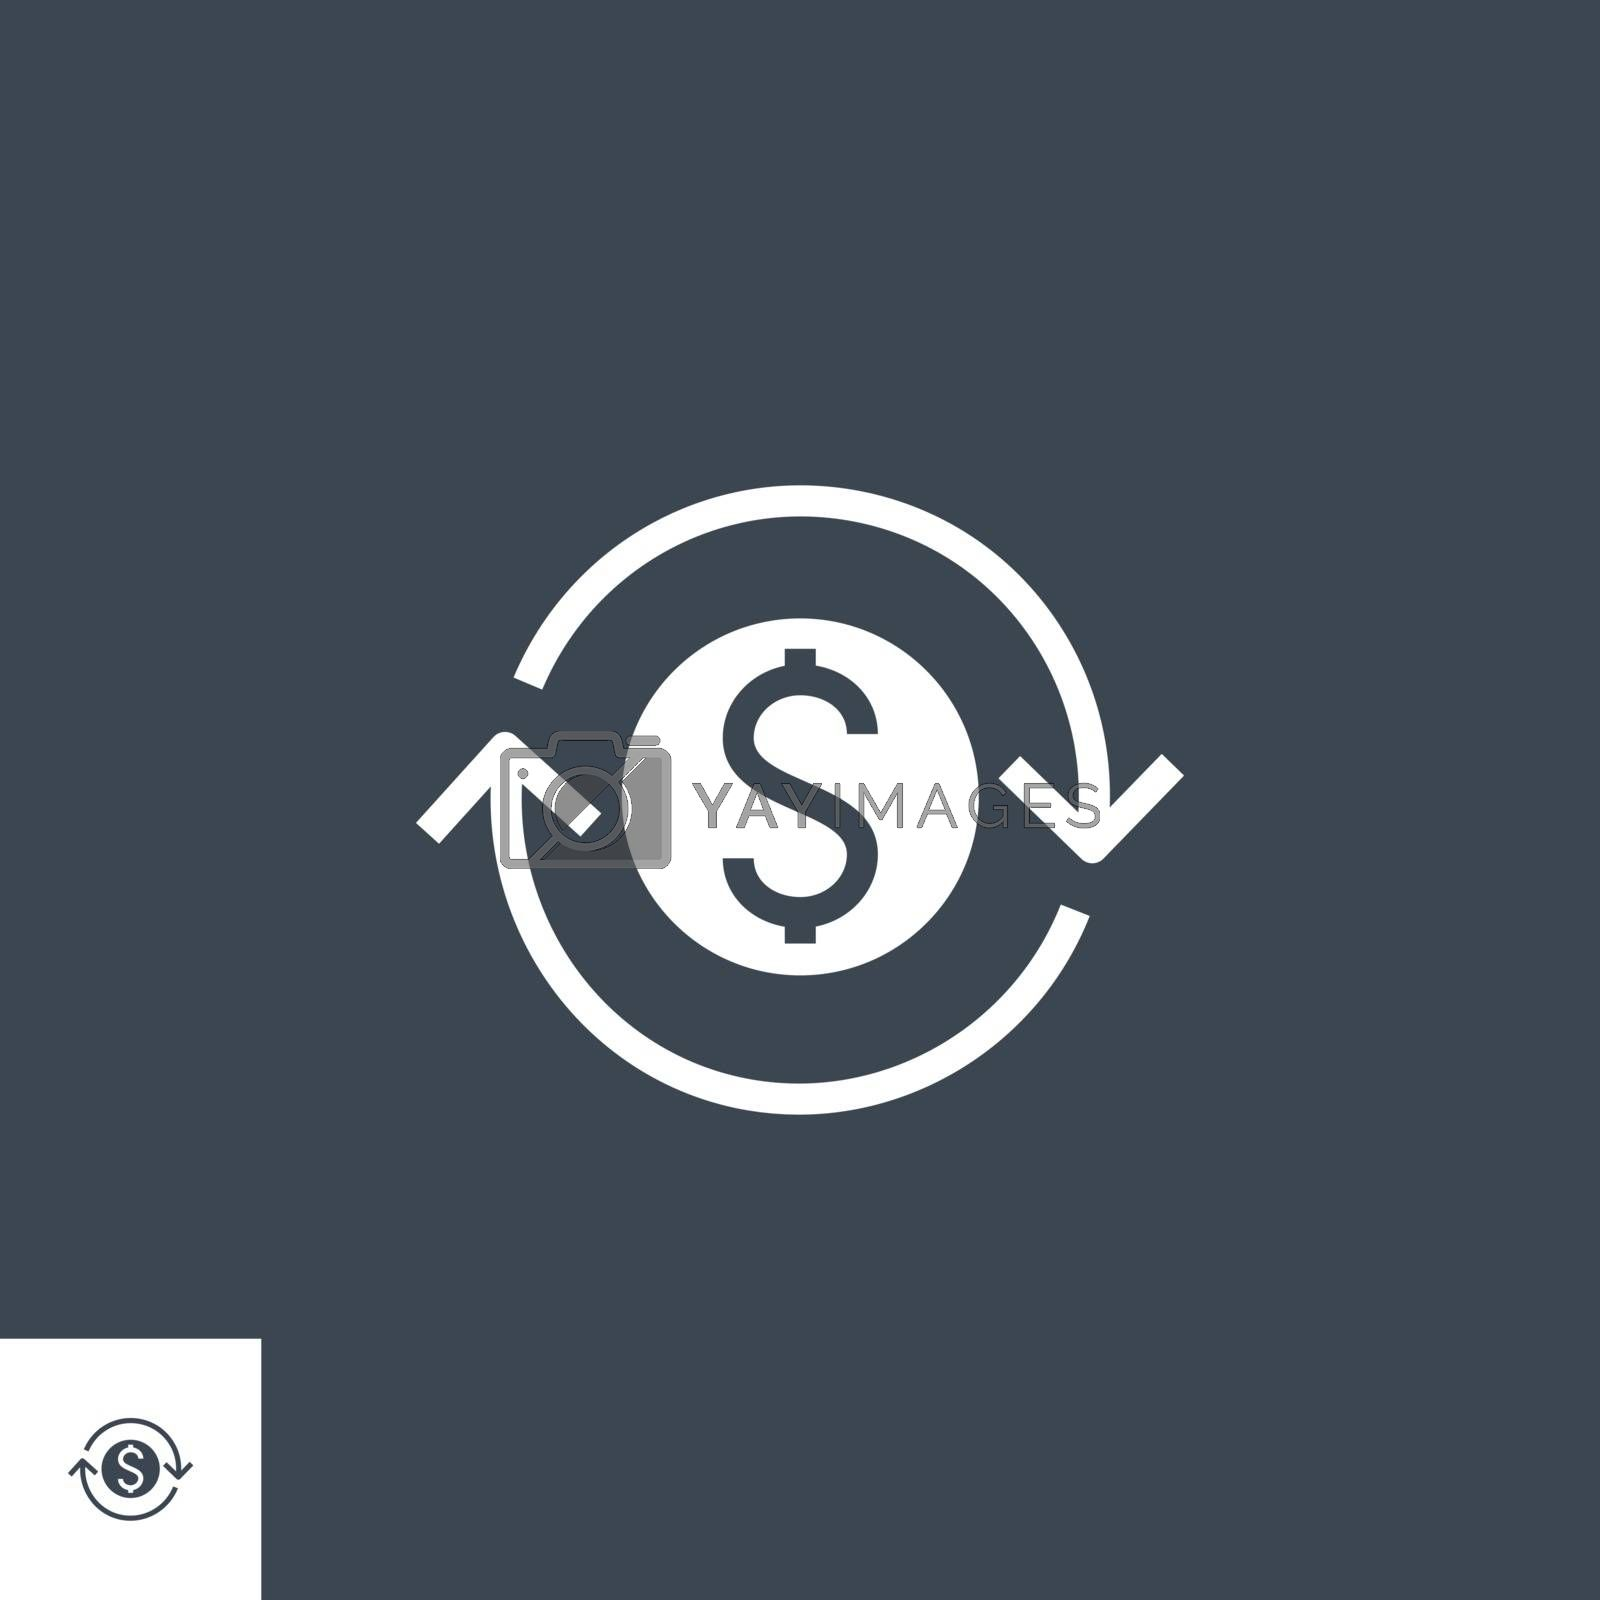 Transfer related vector glyph icon by smoki